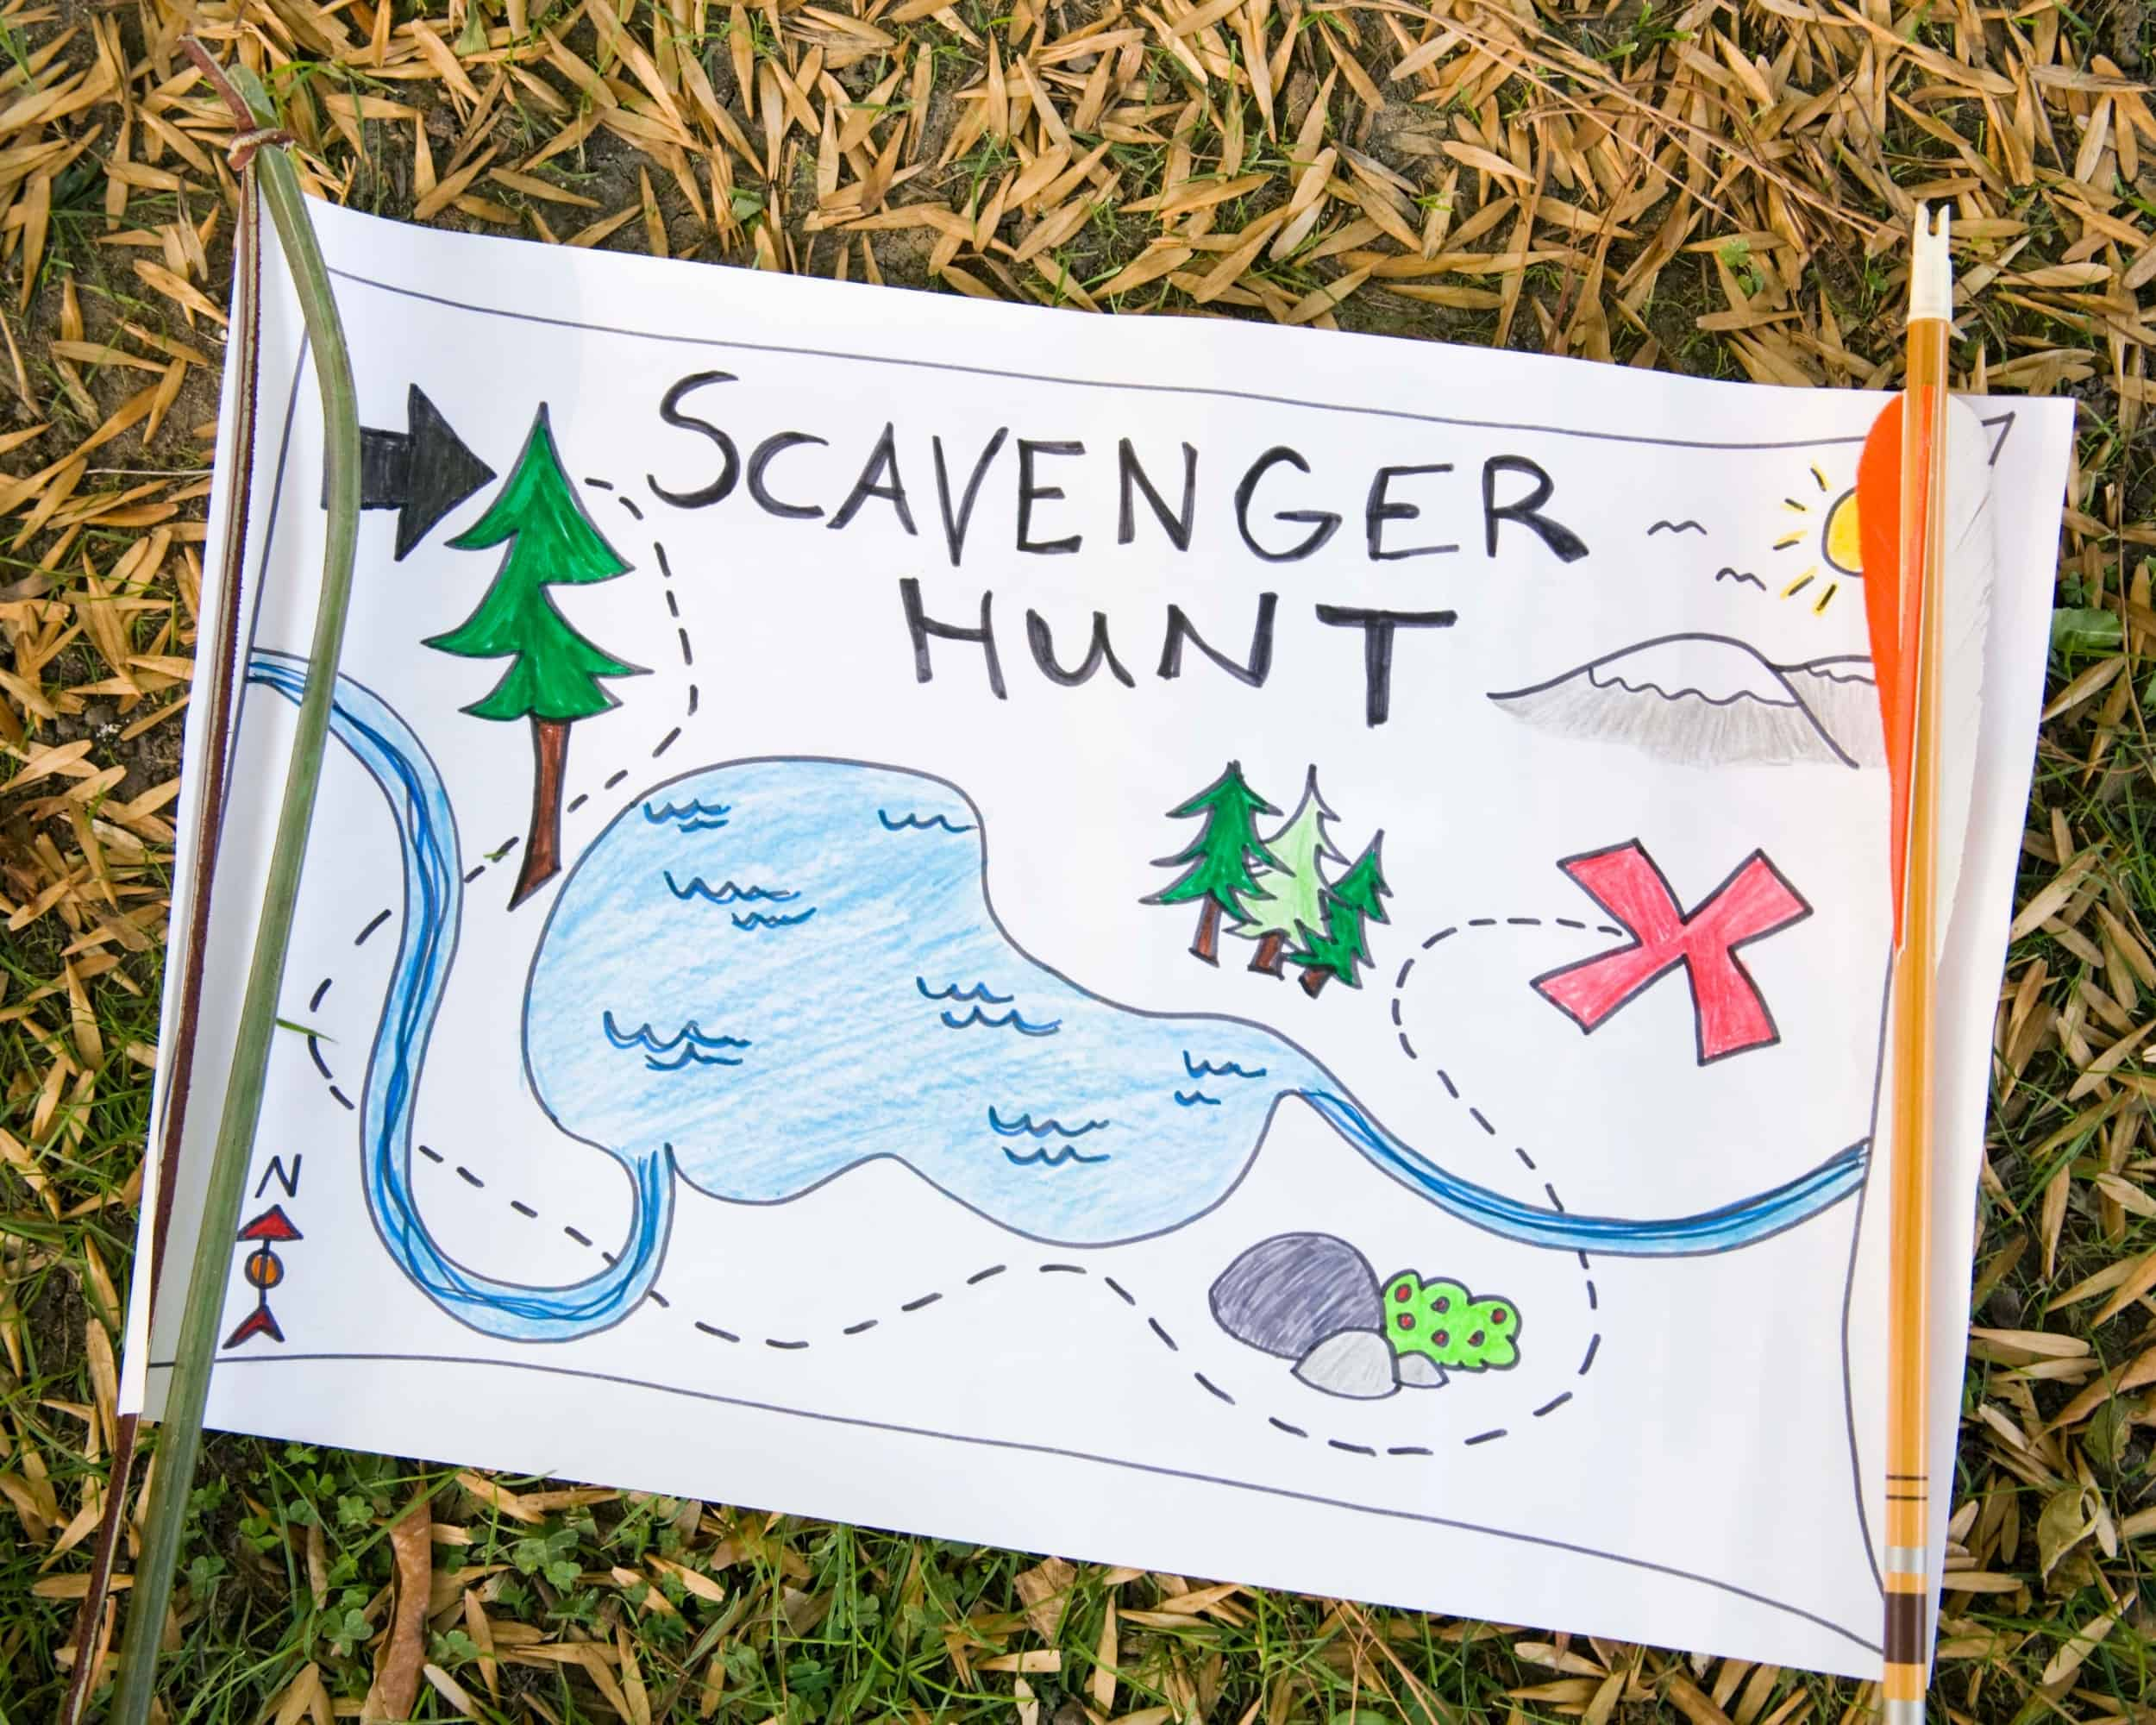 Indoor Scavenger Hunt for Adults: Fun at the Office or at Home